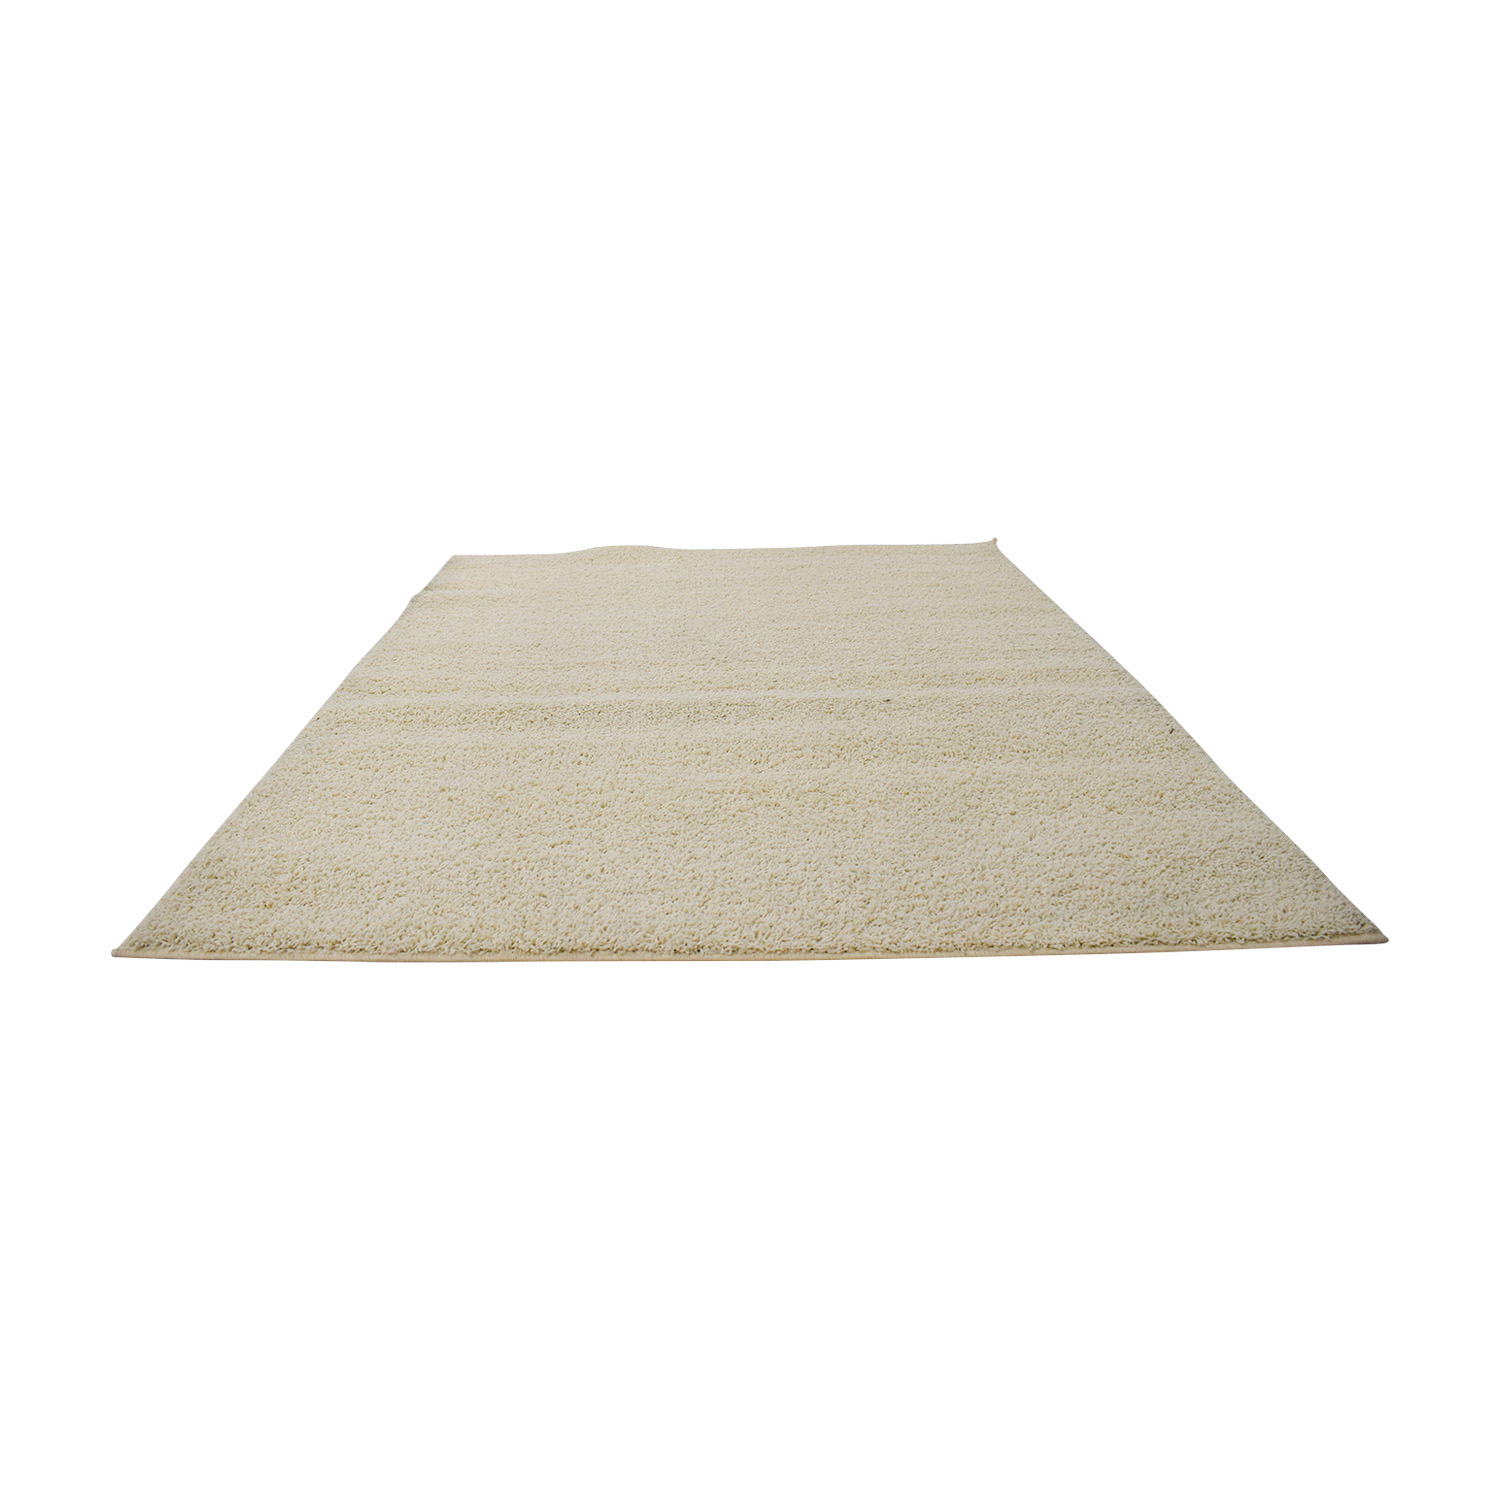 Bed Bath and Beyond Bed Bath and Beyond White Rug coupon